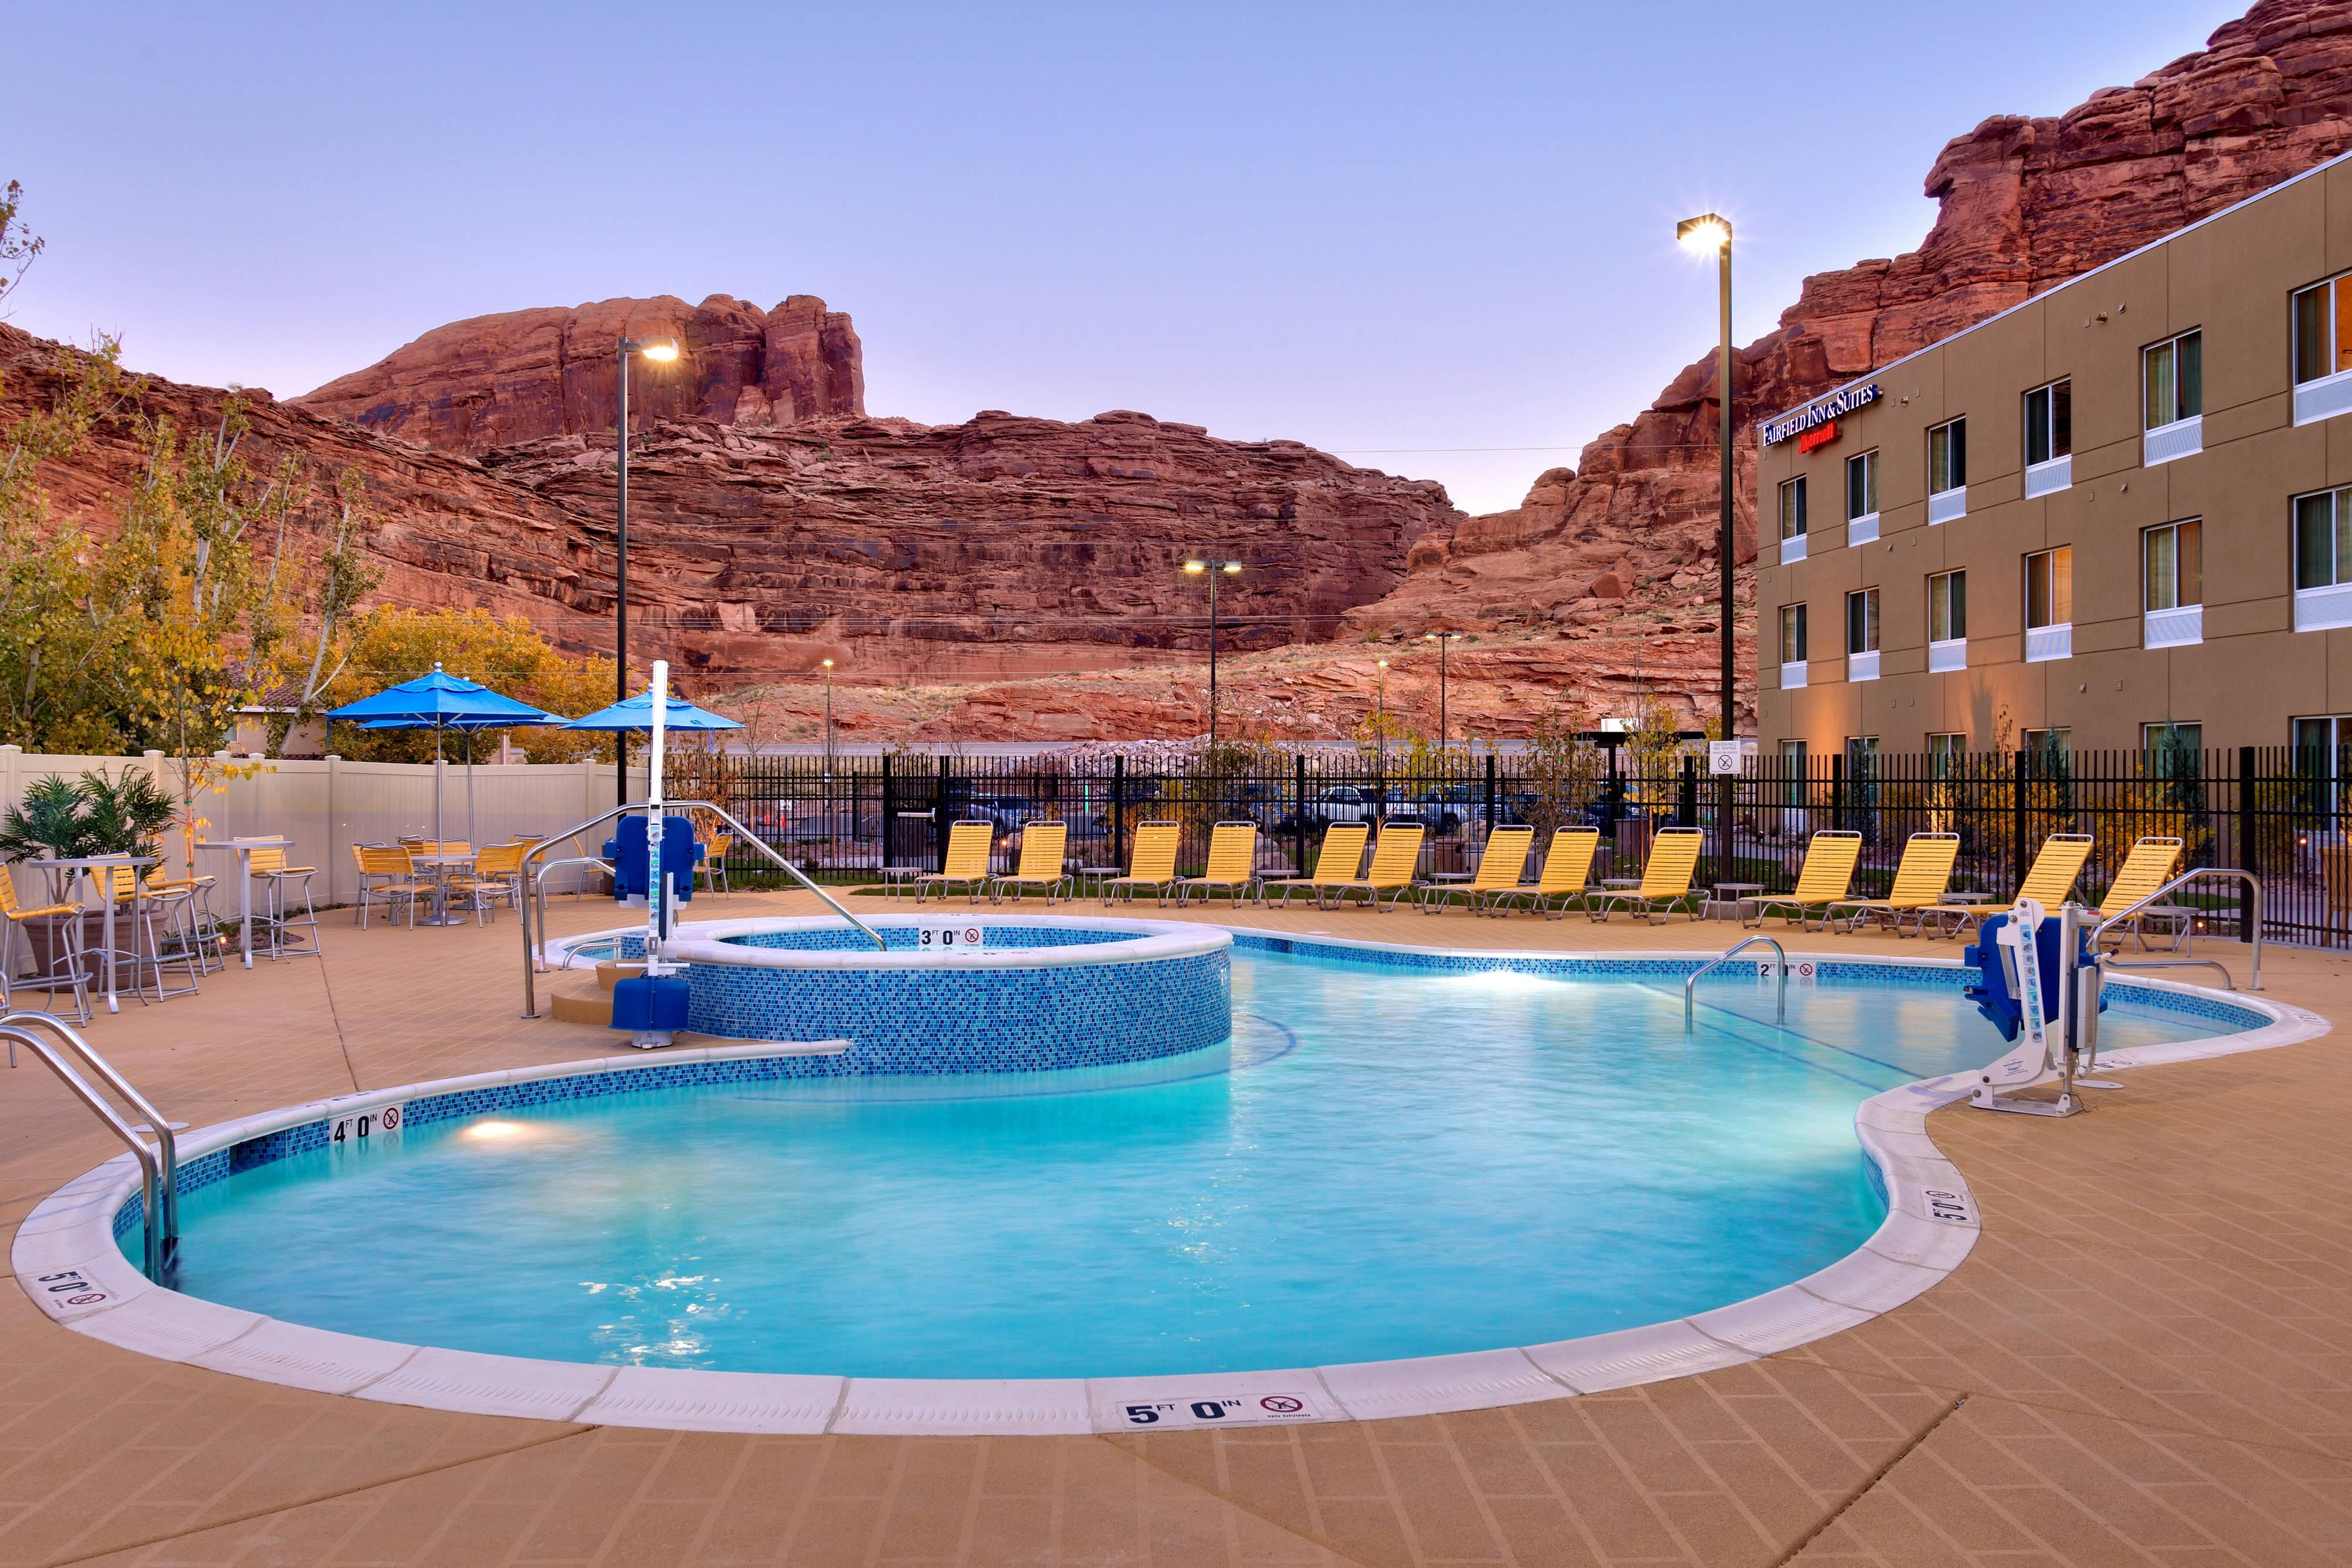 Moab Hotel with Pool